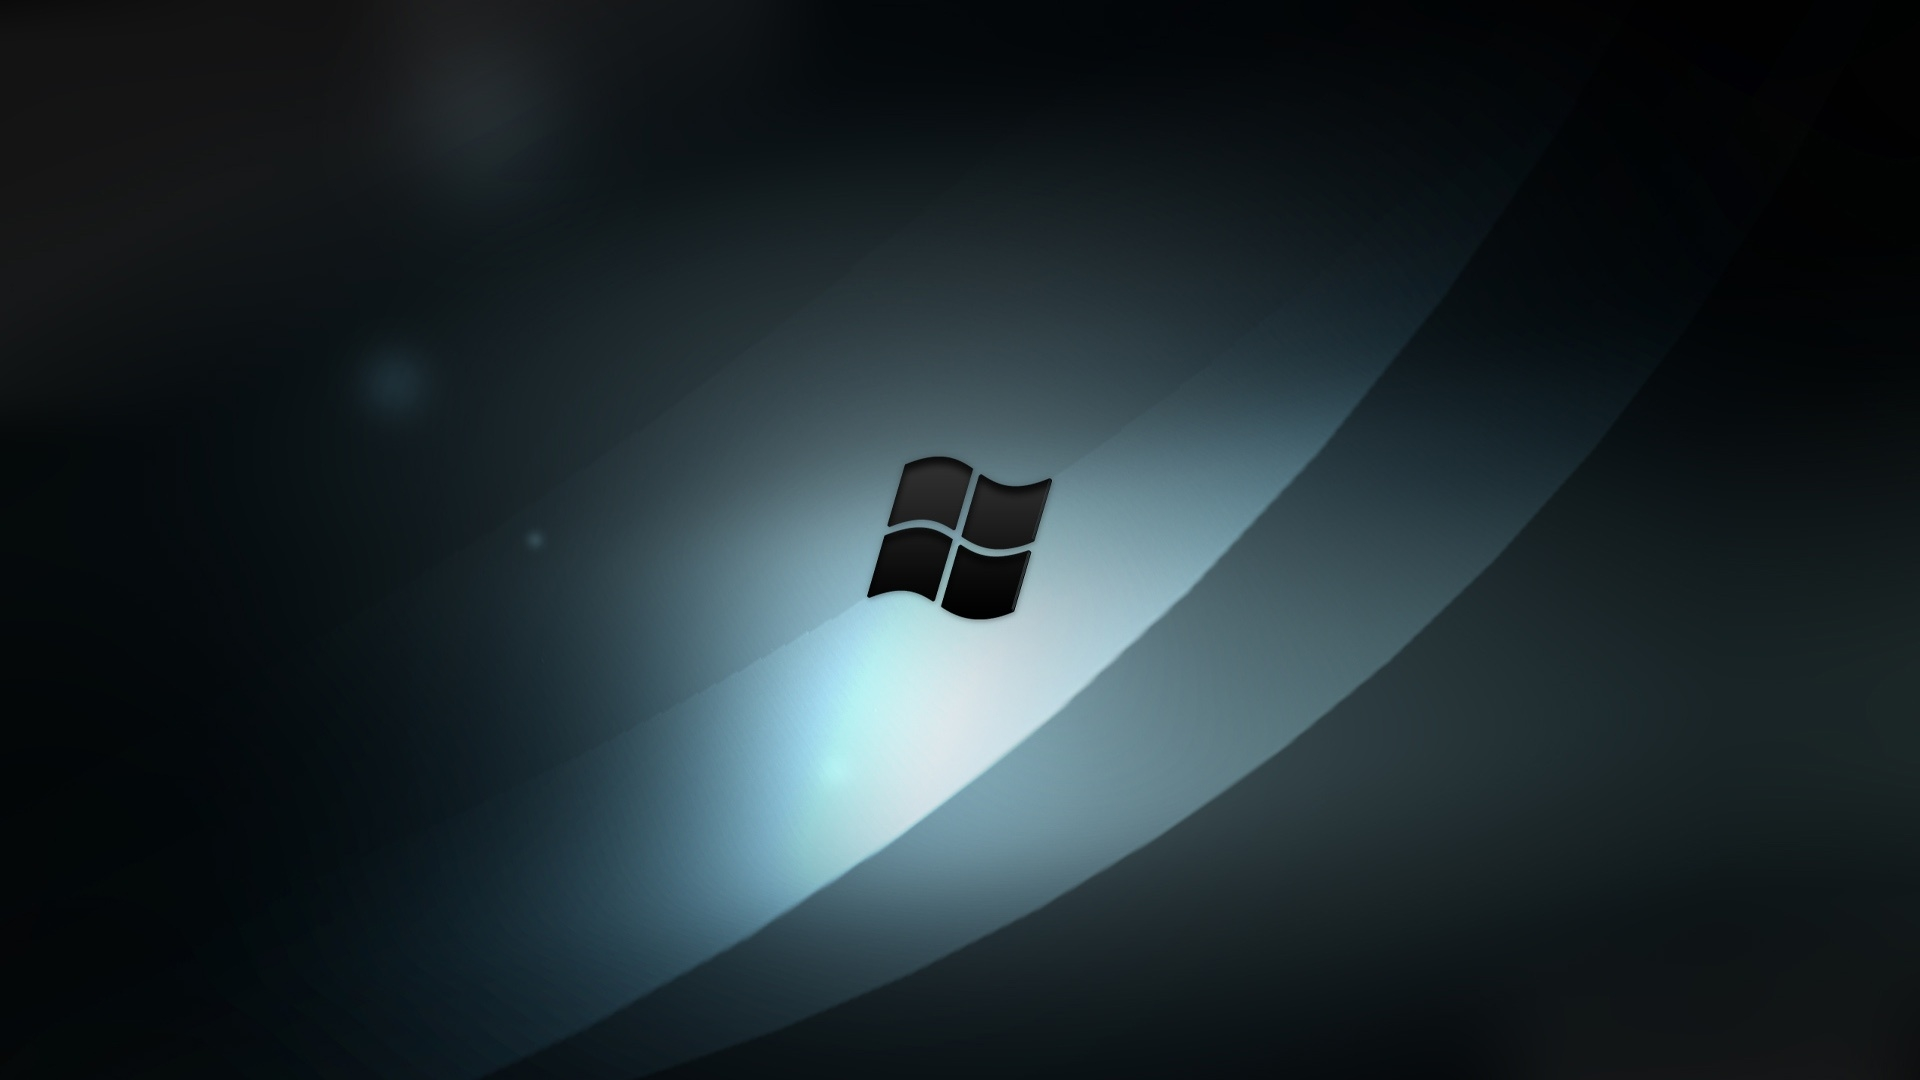 Black Windows Wallpaper